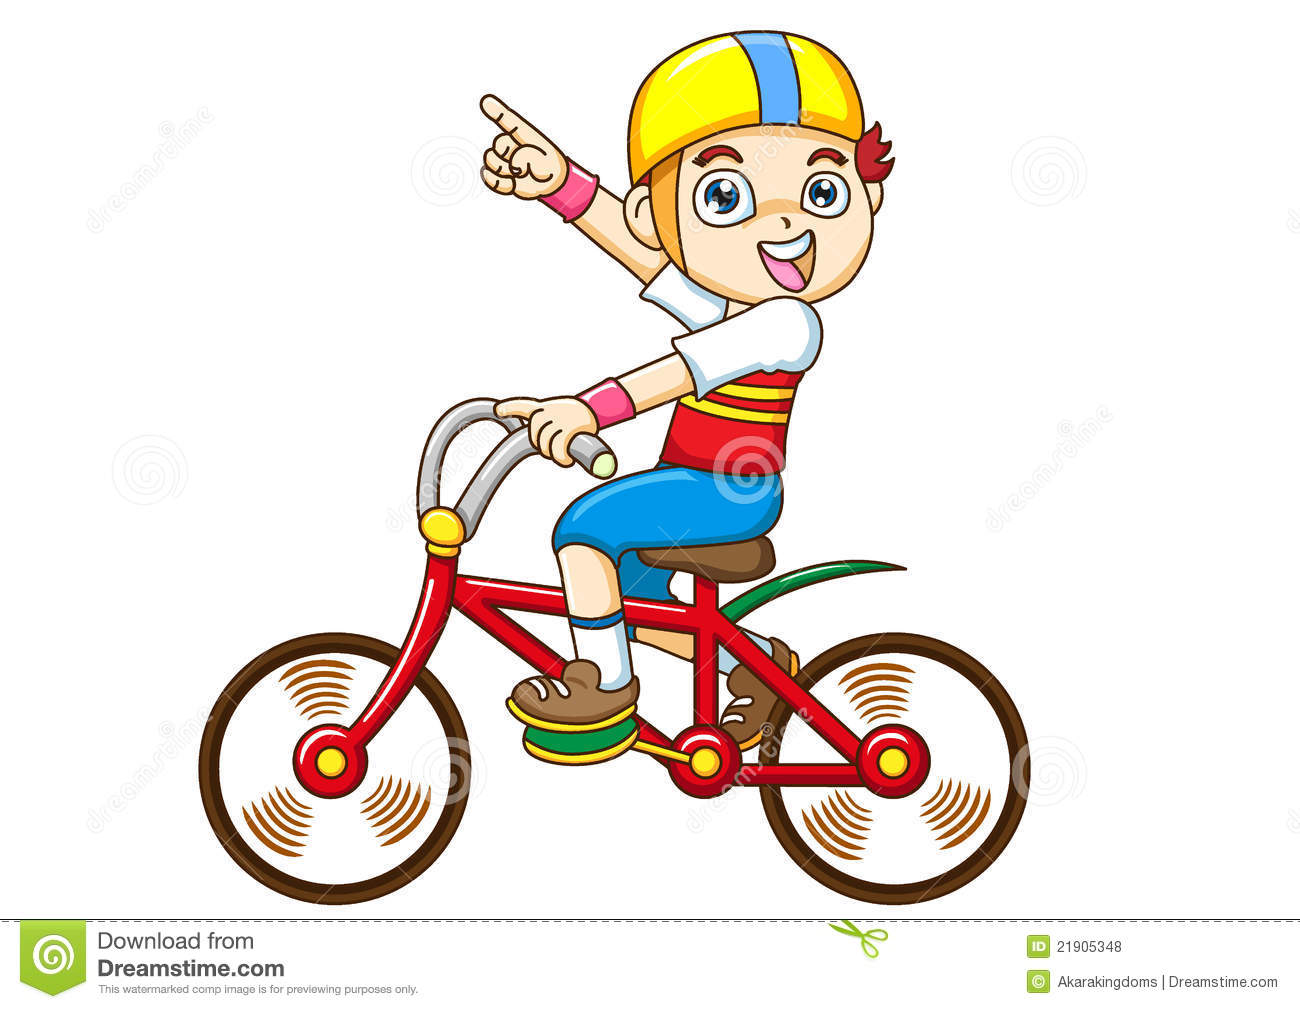 Clip arts children riding in bicycle.